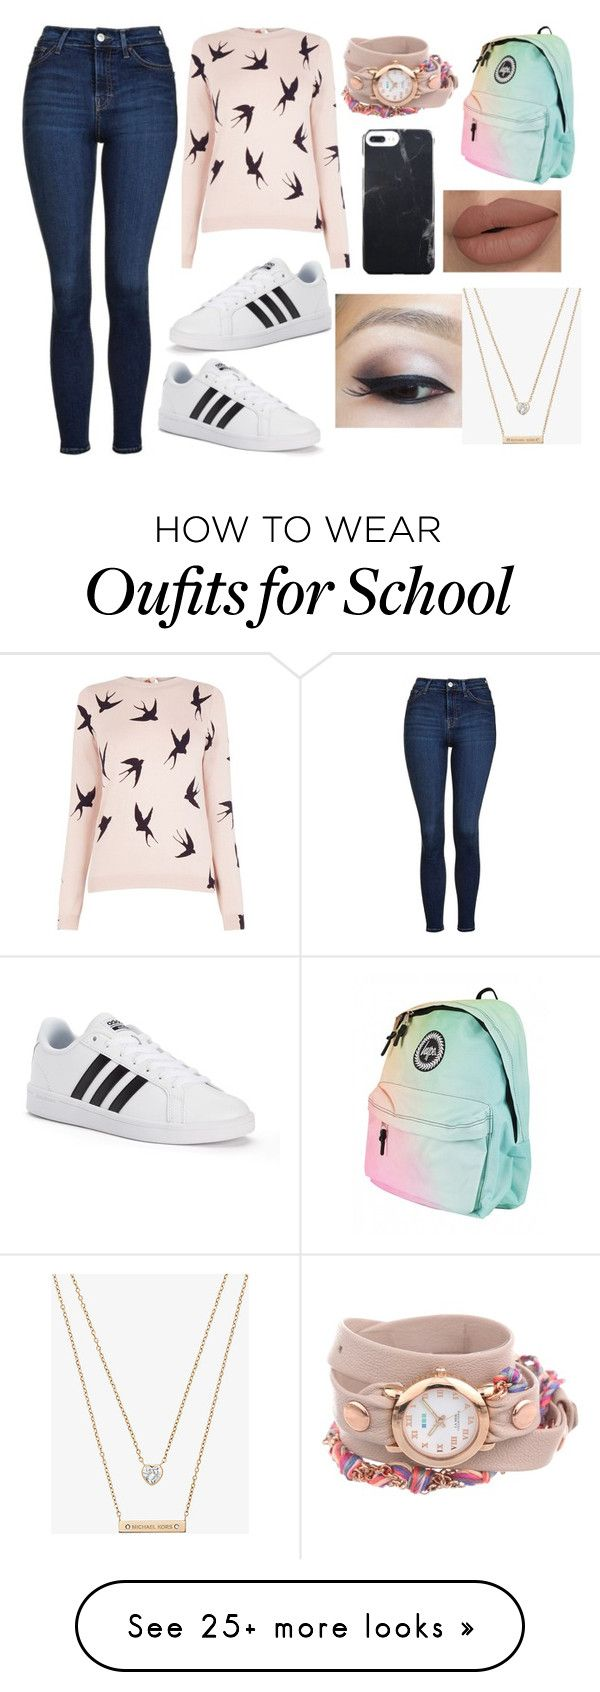 #1396 Casual Day at School by arasshjit on Polyvore featuring Oasis, Topshop, adidas, La Mer and Michael Kors ,Adidas Shoes Online,#adidas #shoes